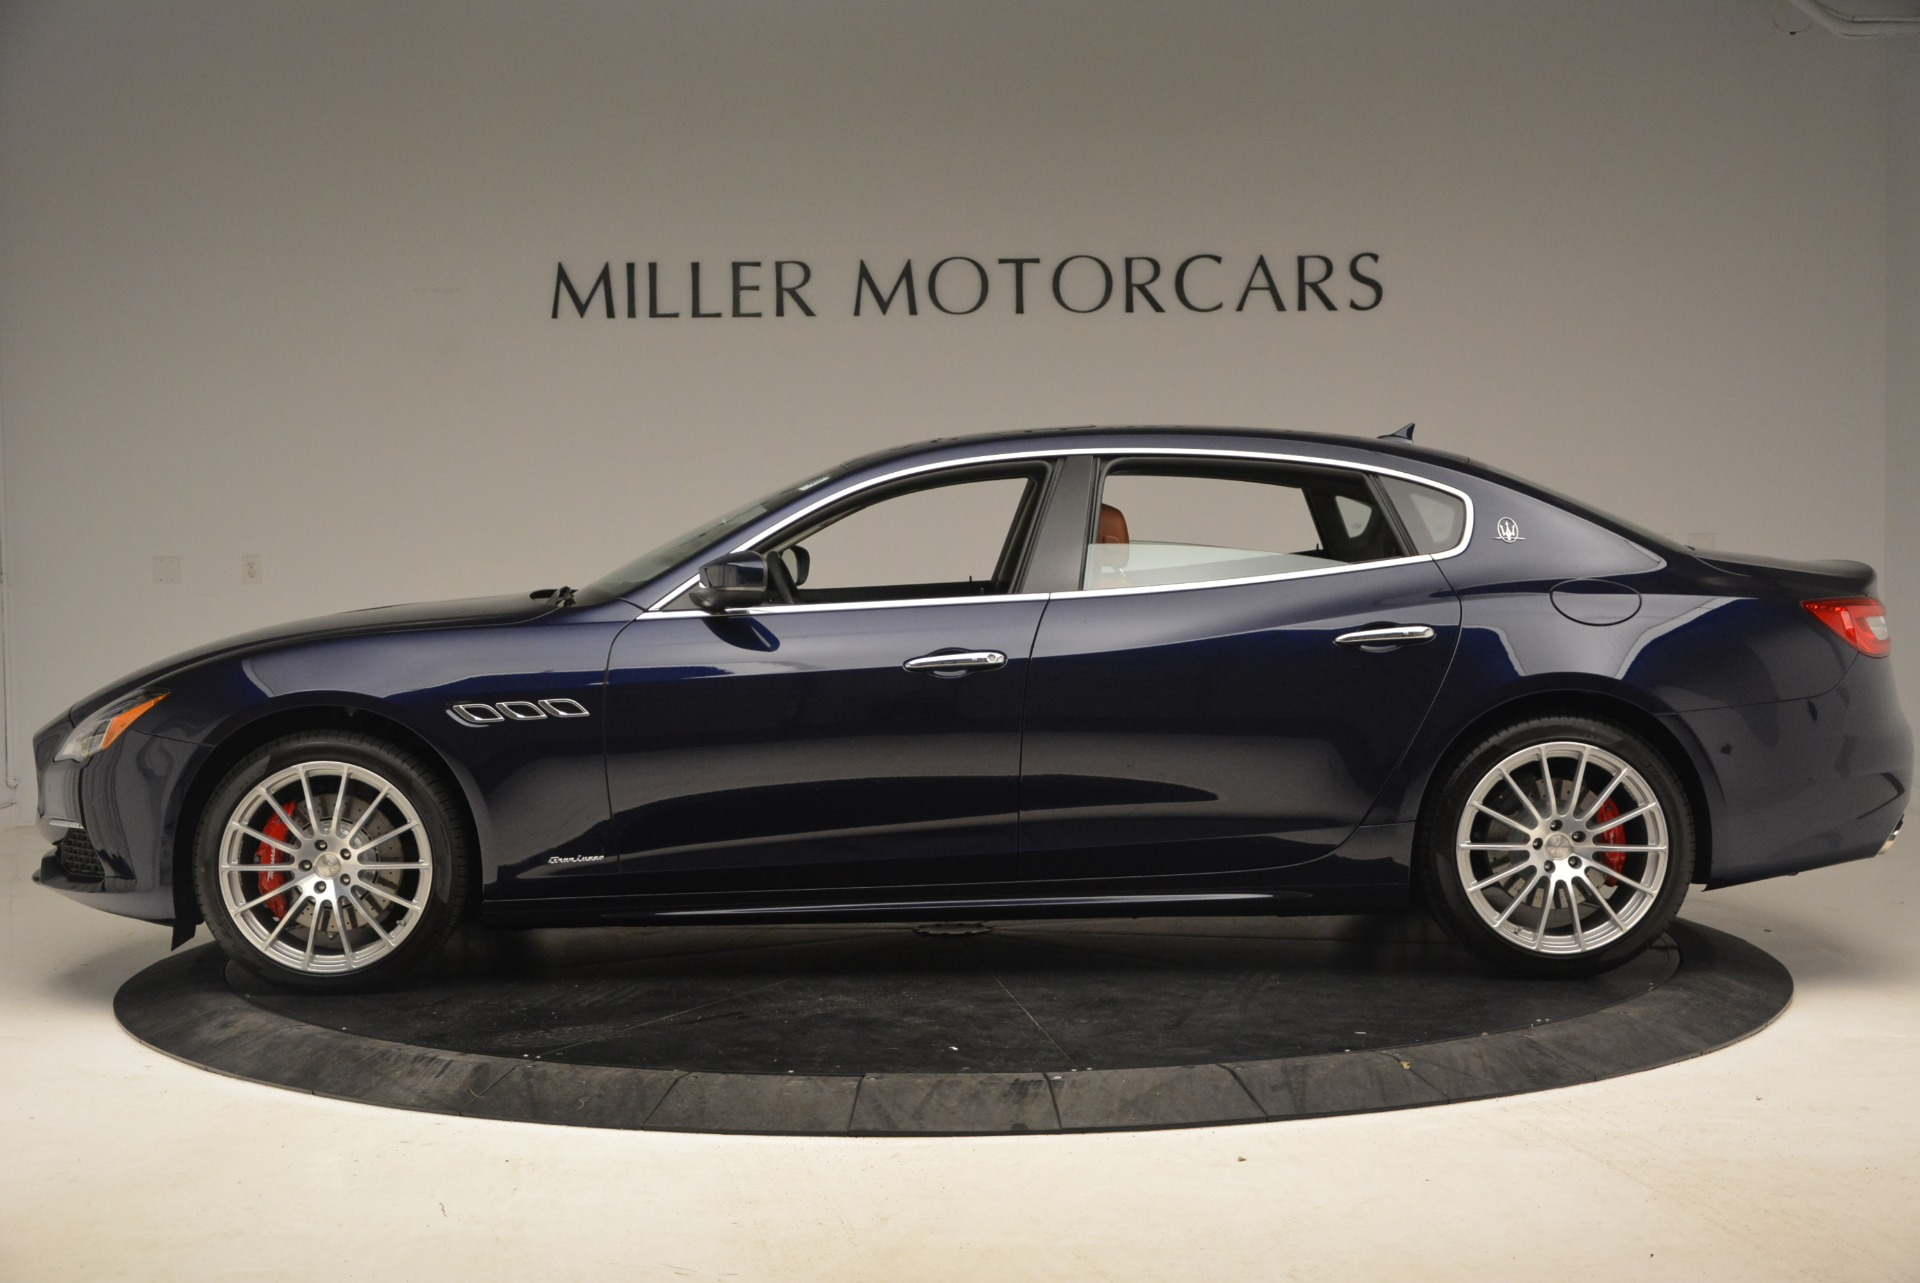 New 2019 Maserati Quattroporte S Q4 GranLusso For Sale In Greenwich, CT 2767_p3